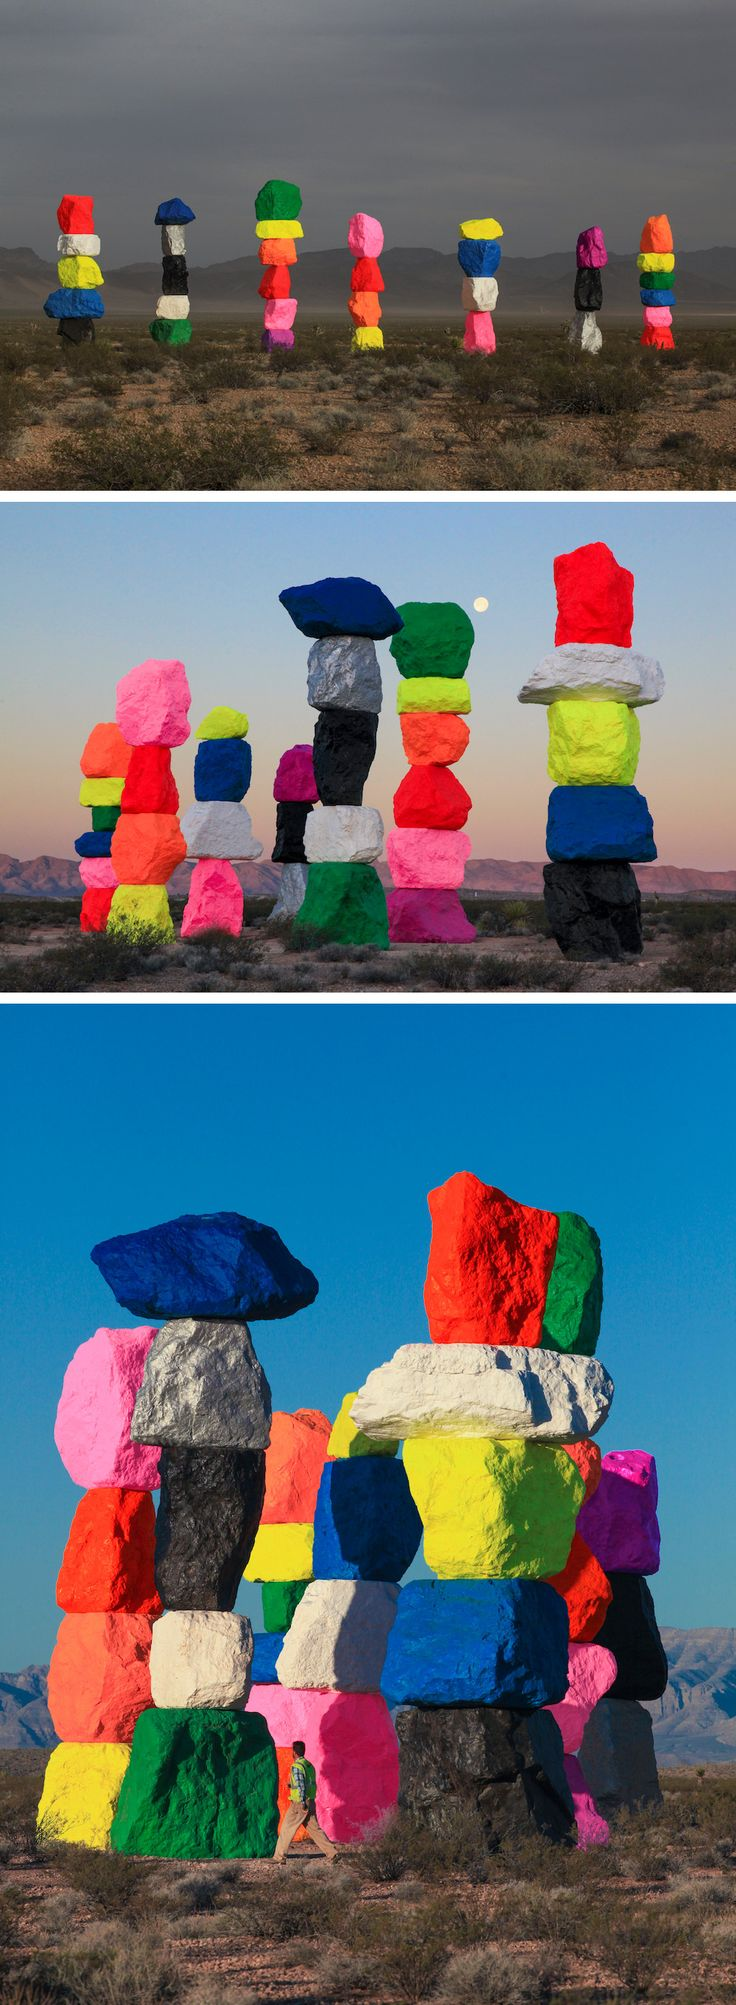 "sculpture US : Ugo Rondinone, 2016, ""Seven 30-Foot-Tall Dayglow Totems"", désert du Nevada, Land art, multicolore"